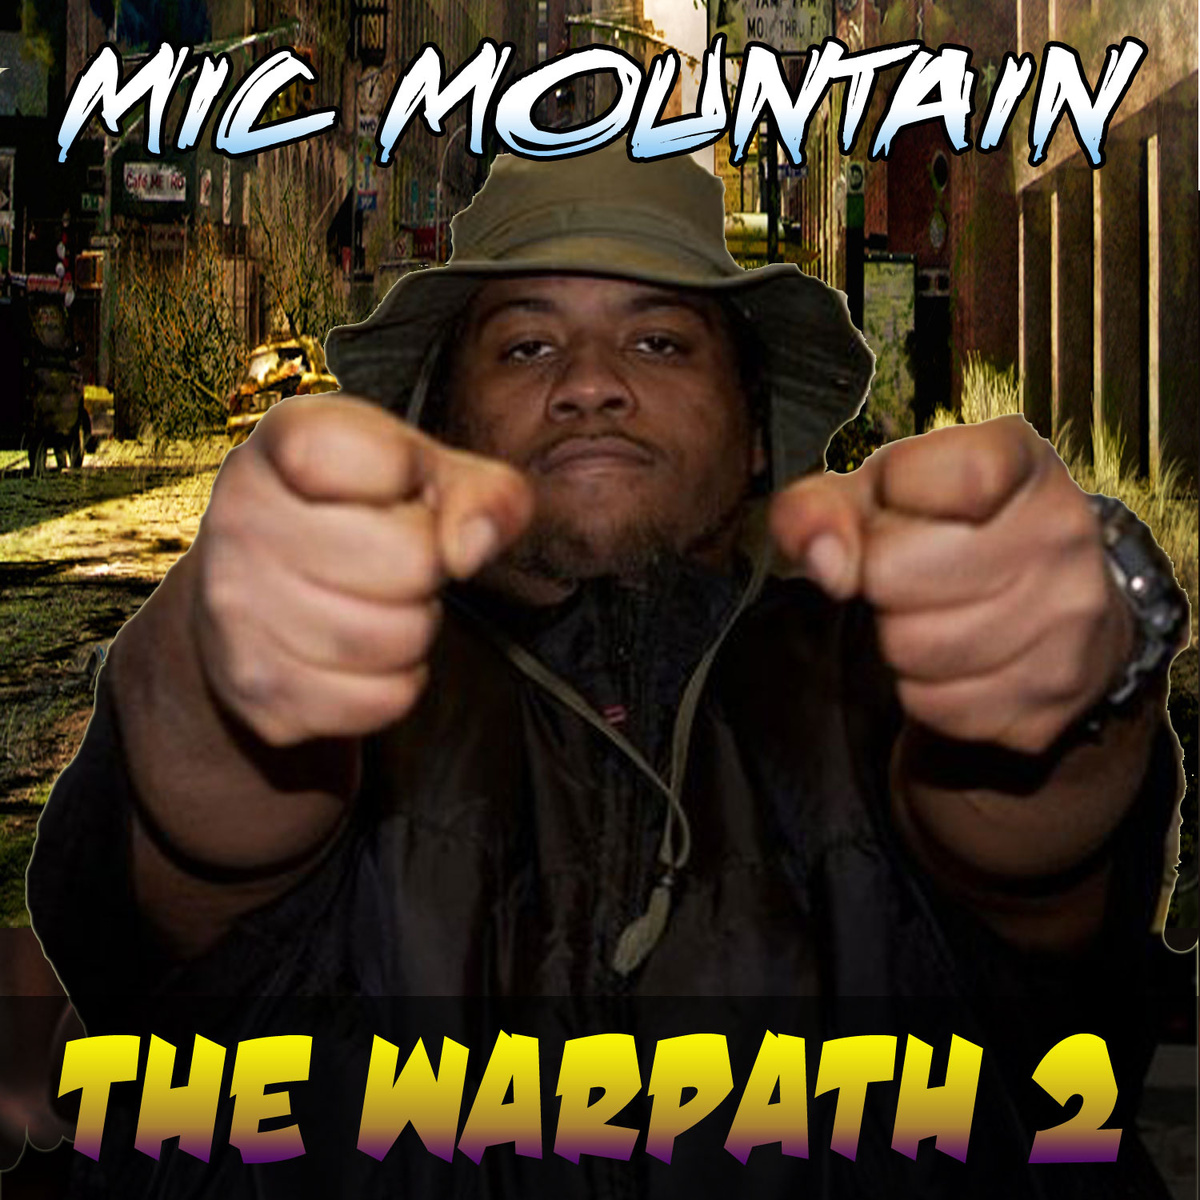 MIC MOUNTAIN – THE WARPATH LP 2 Review